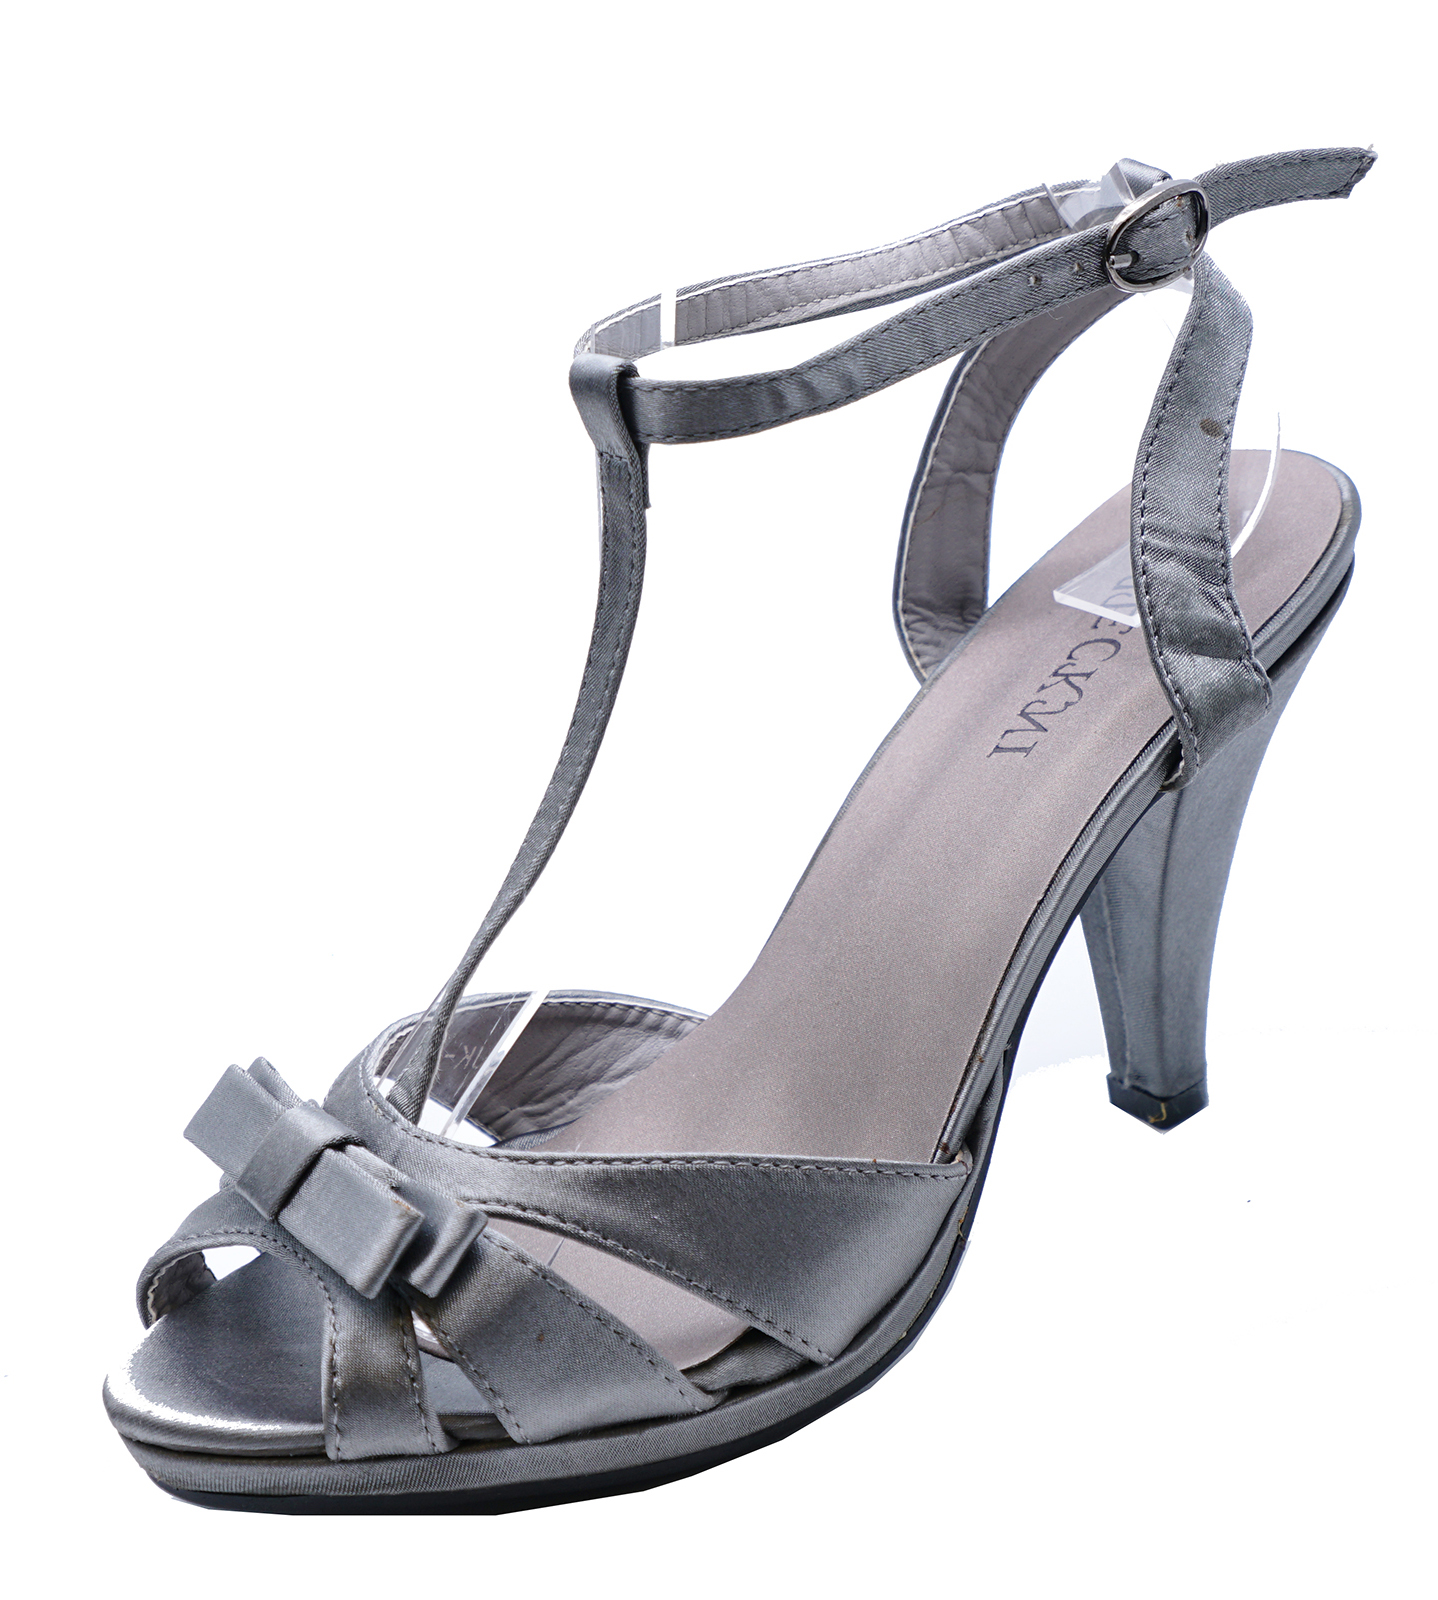 Sentinel WOMENS ELEGANT GREY SATIN OPEN-TOE EVENING SANDALS PARTY SHOES  SIZES 3-8